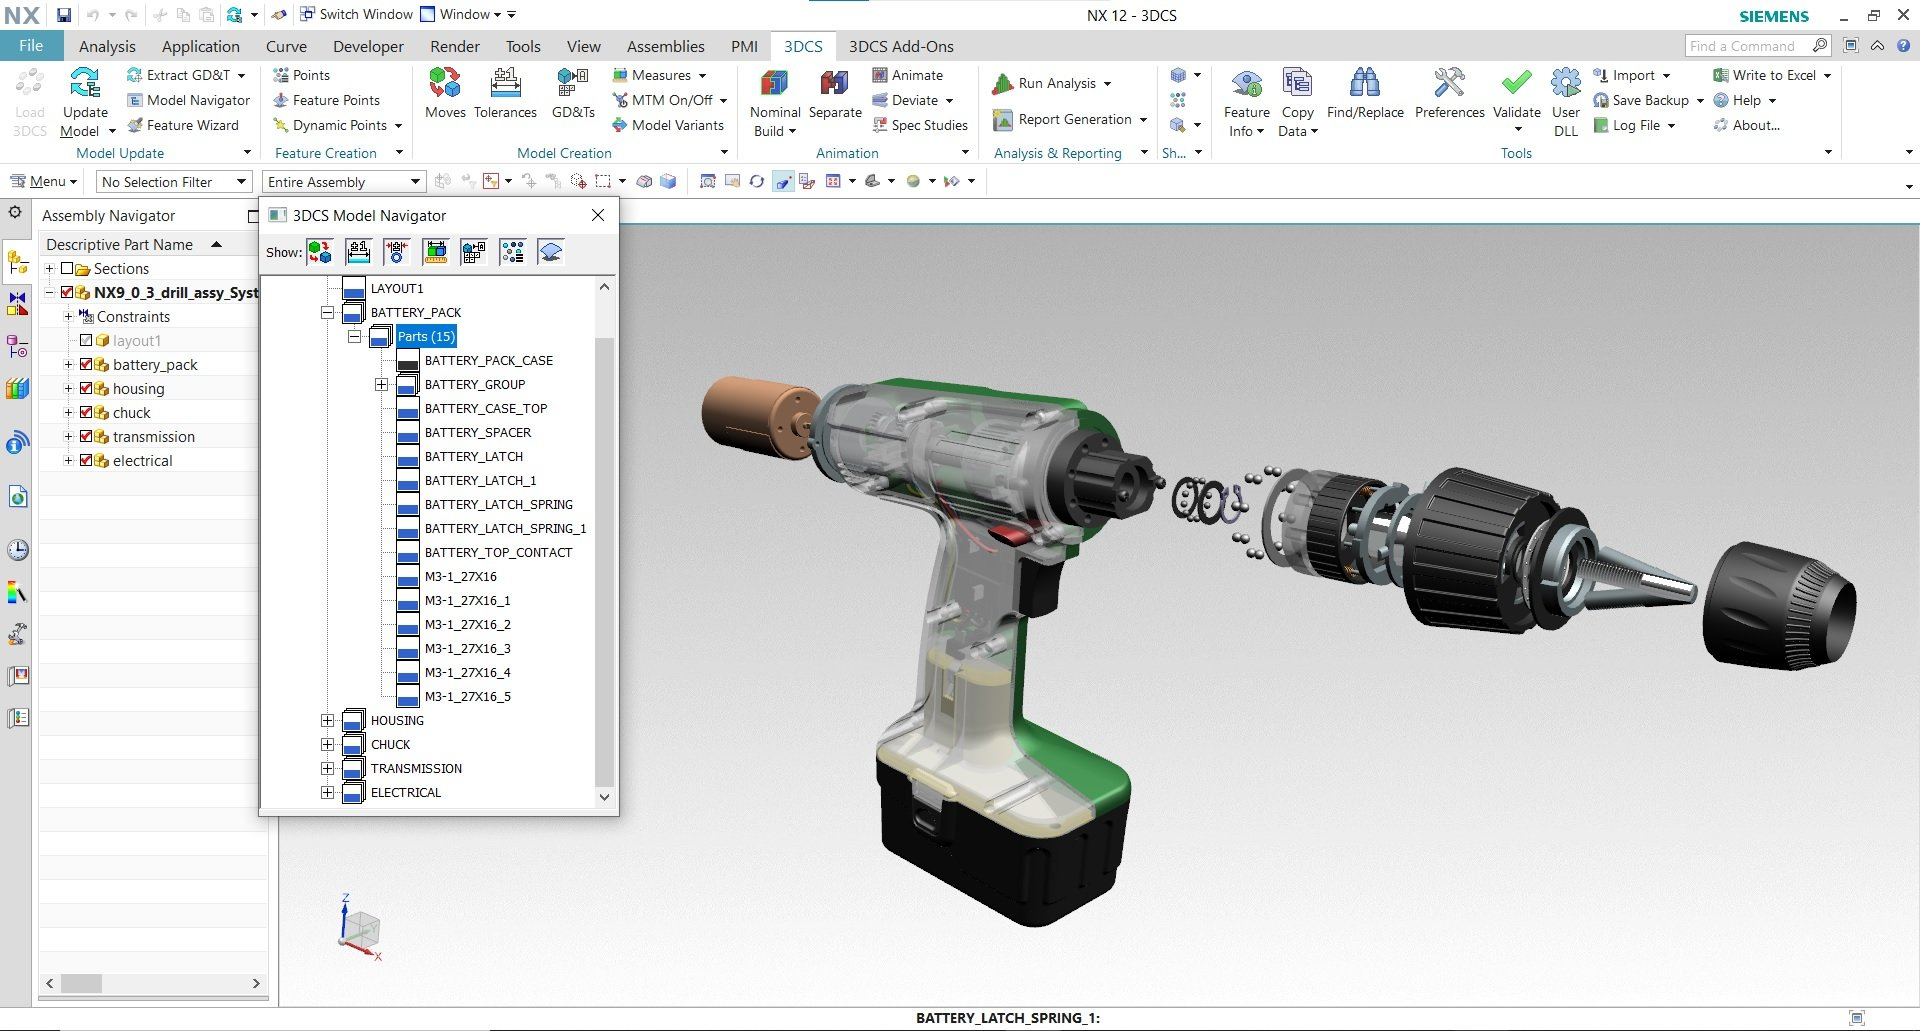 Product Assembly Simulation - 3DCS